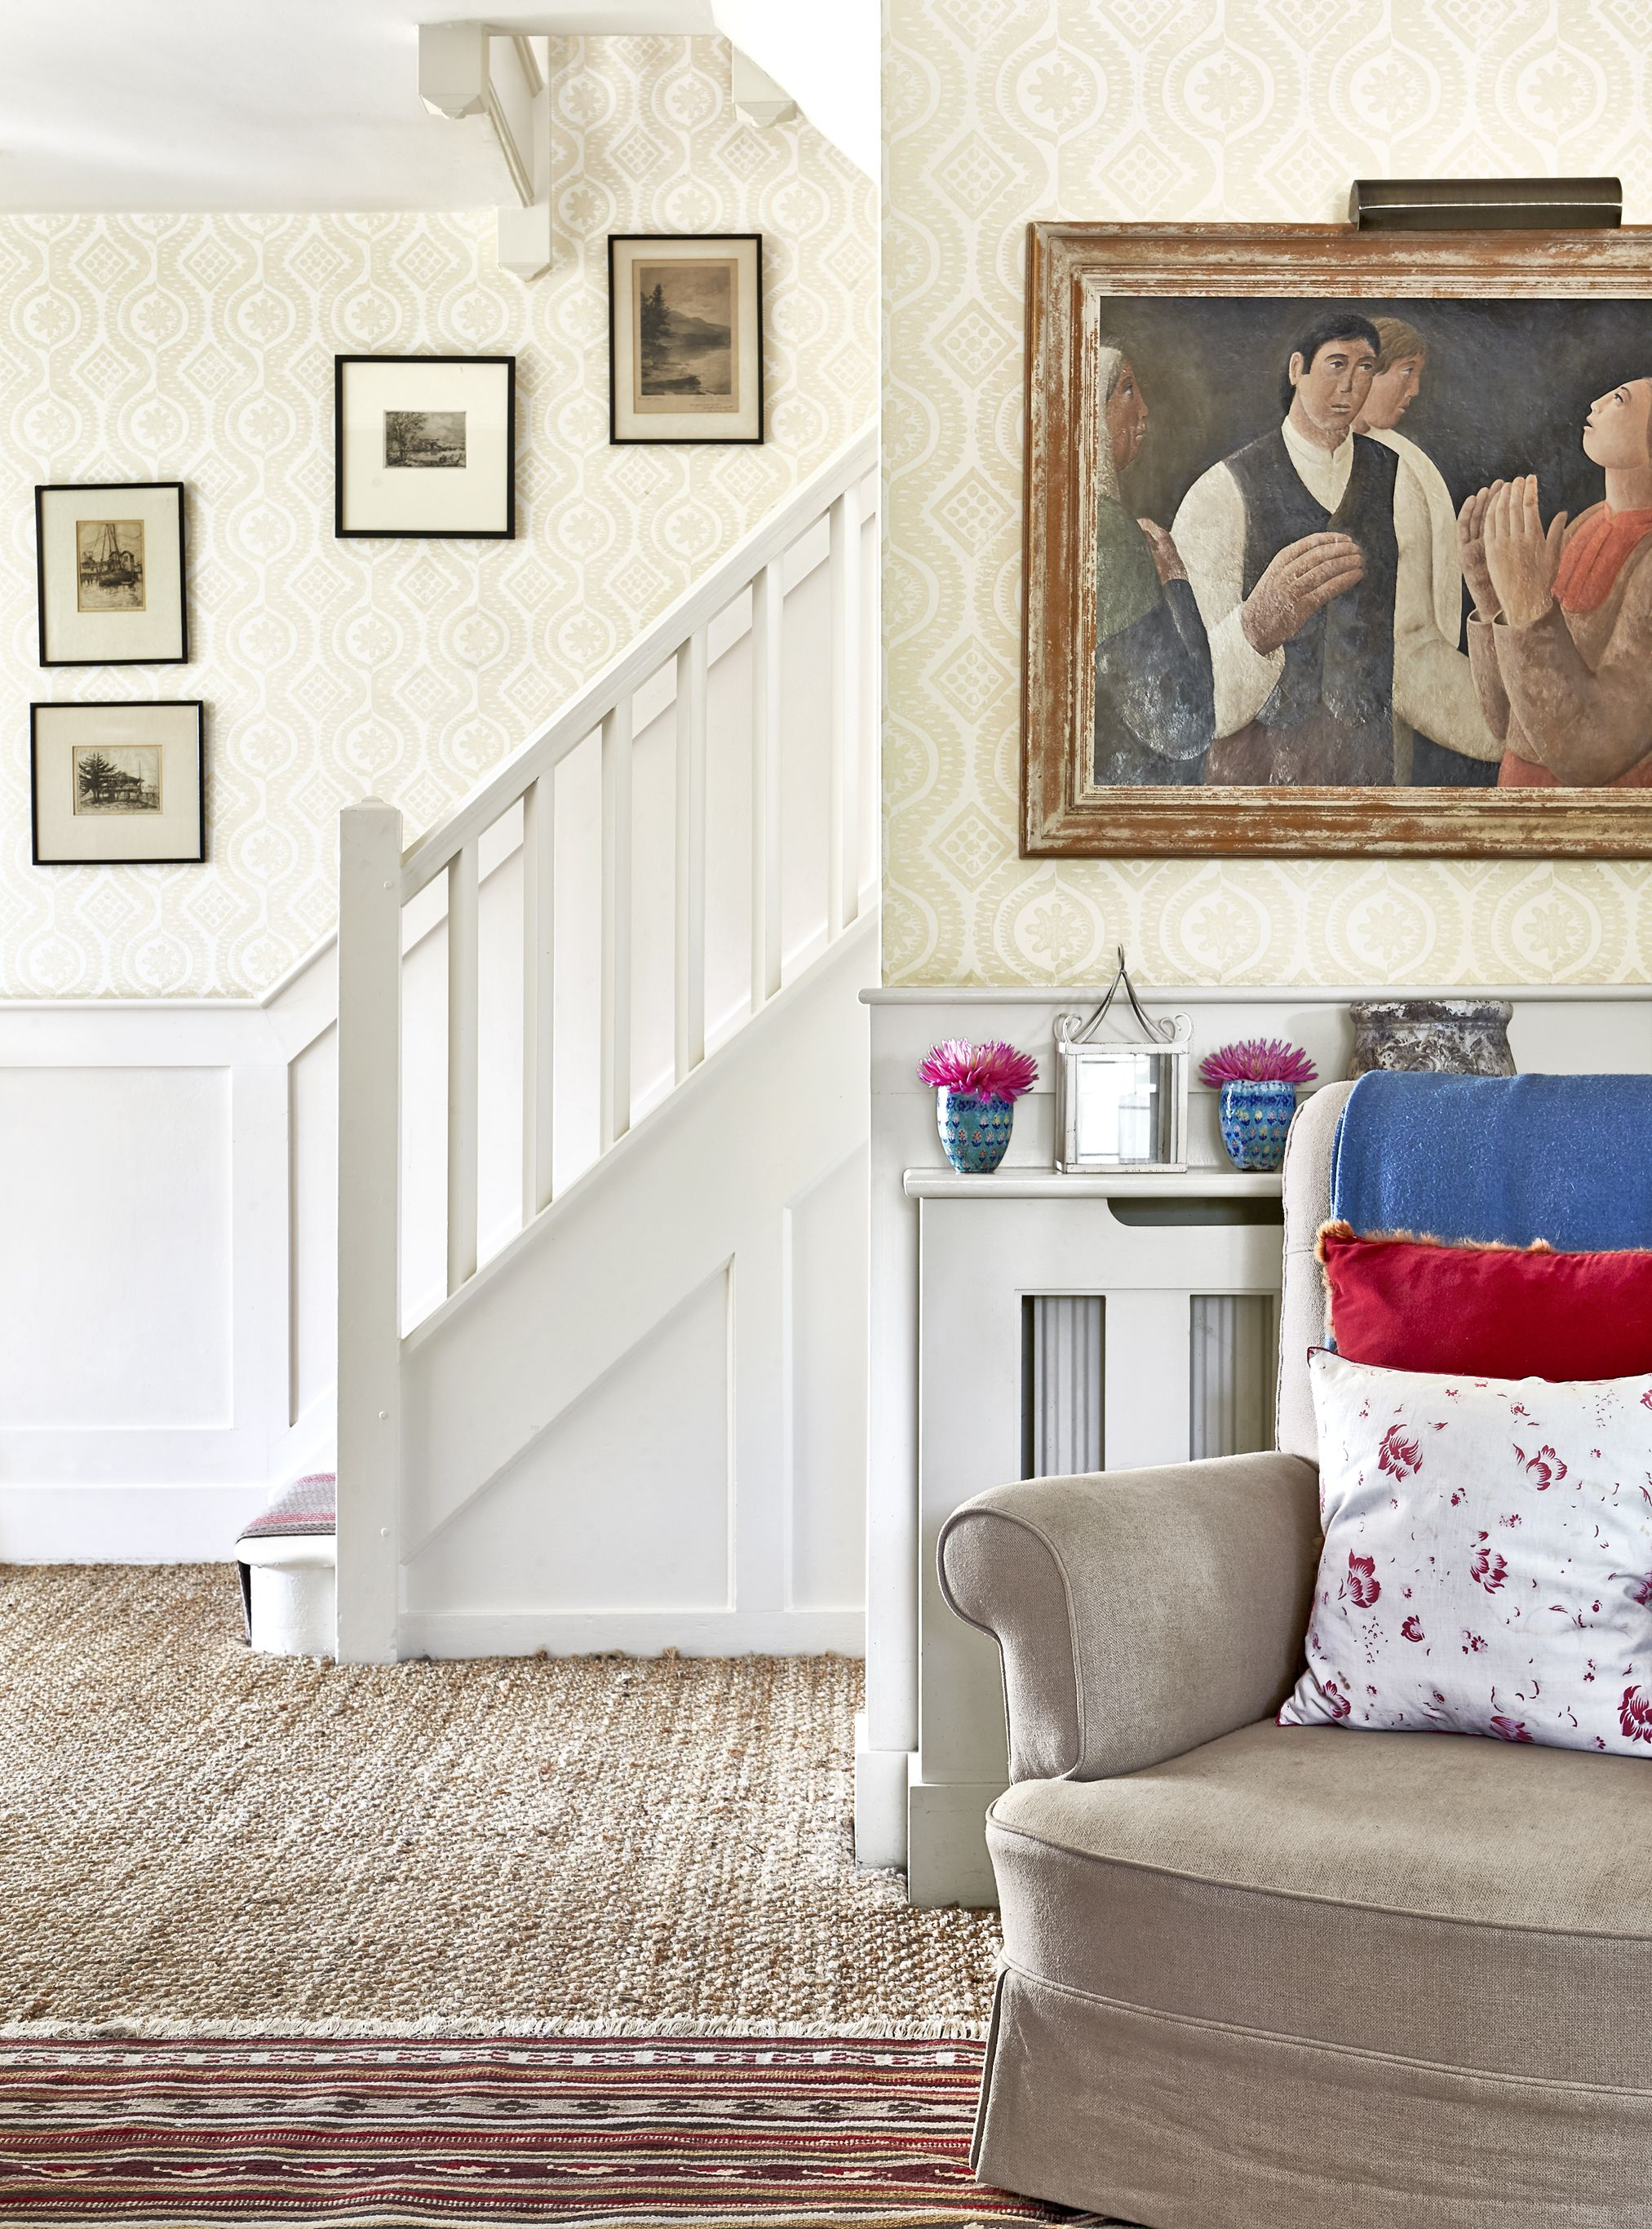 50 Staircase Design Ideas - Beautiful Ways to Decorate a Stairway